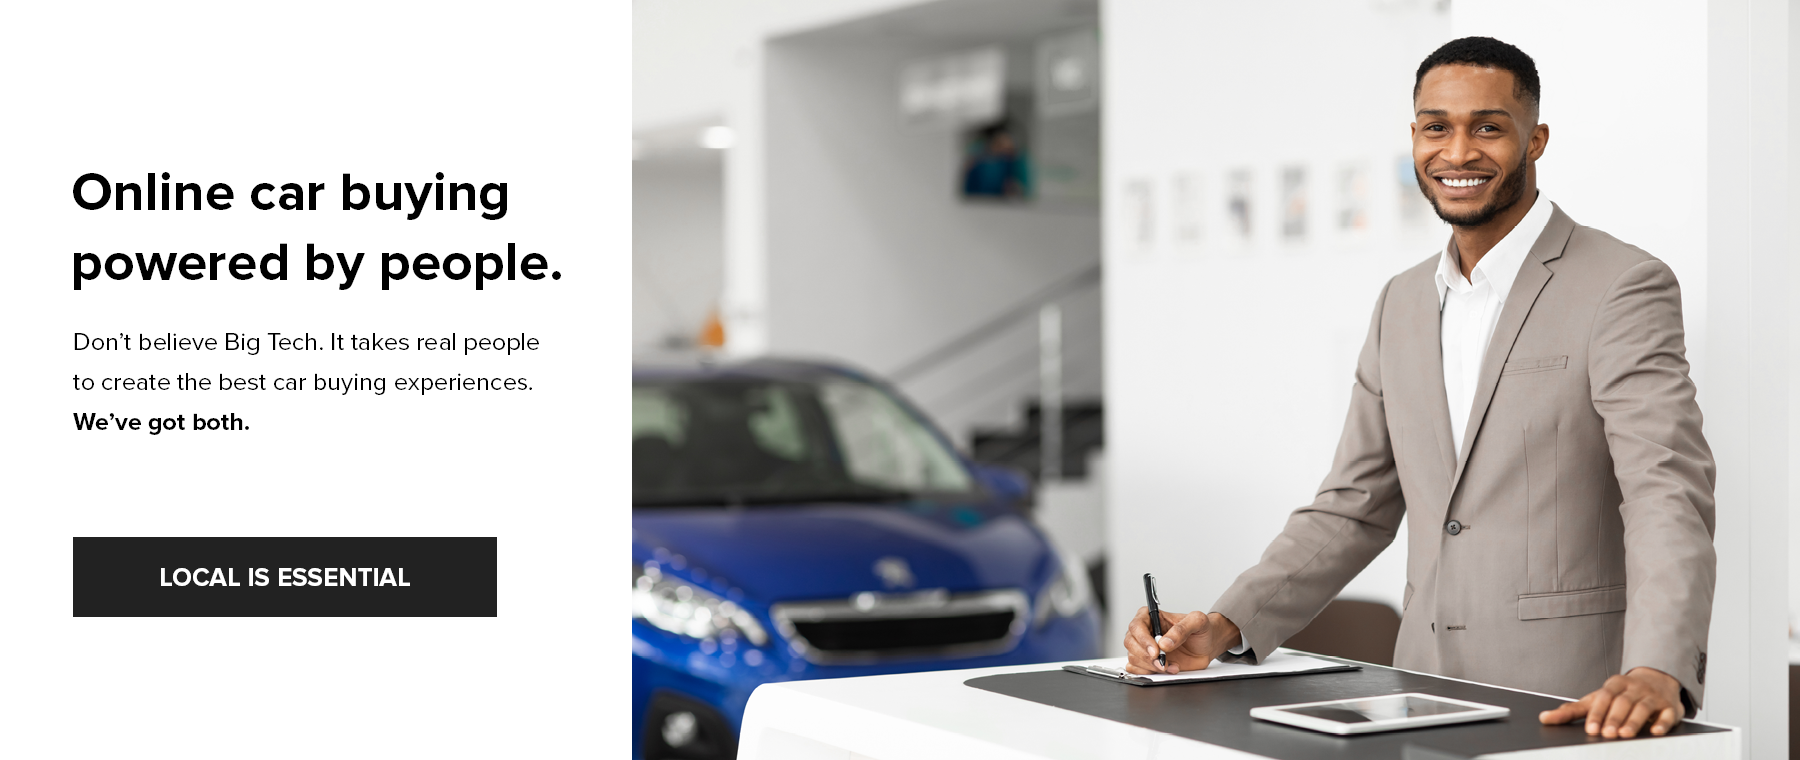 Online car buying powered by people. Don't believe Big Tech. It takes real people to create the best car buying experiences. We've got both.